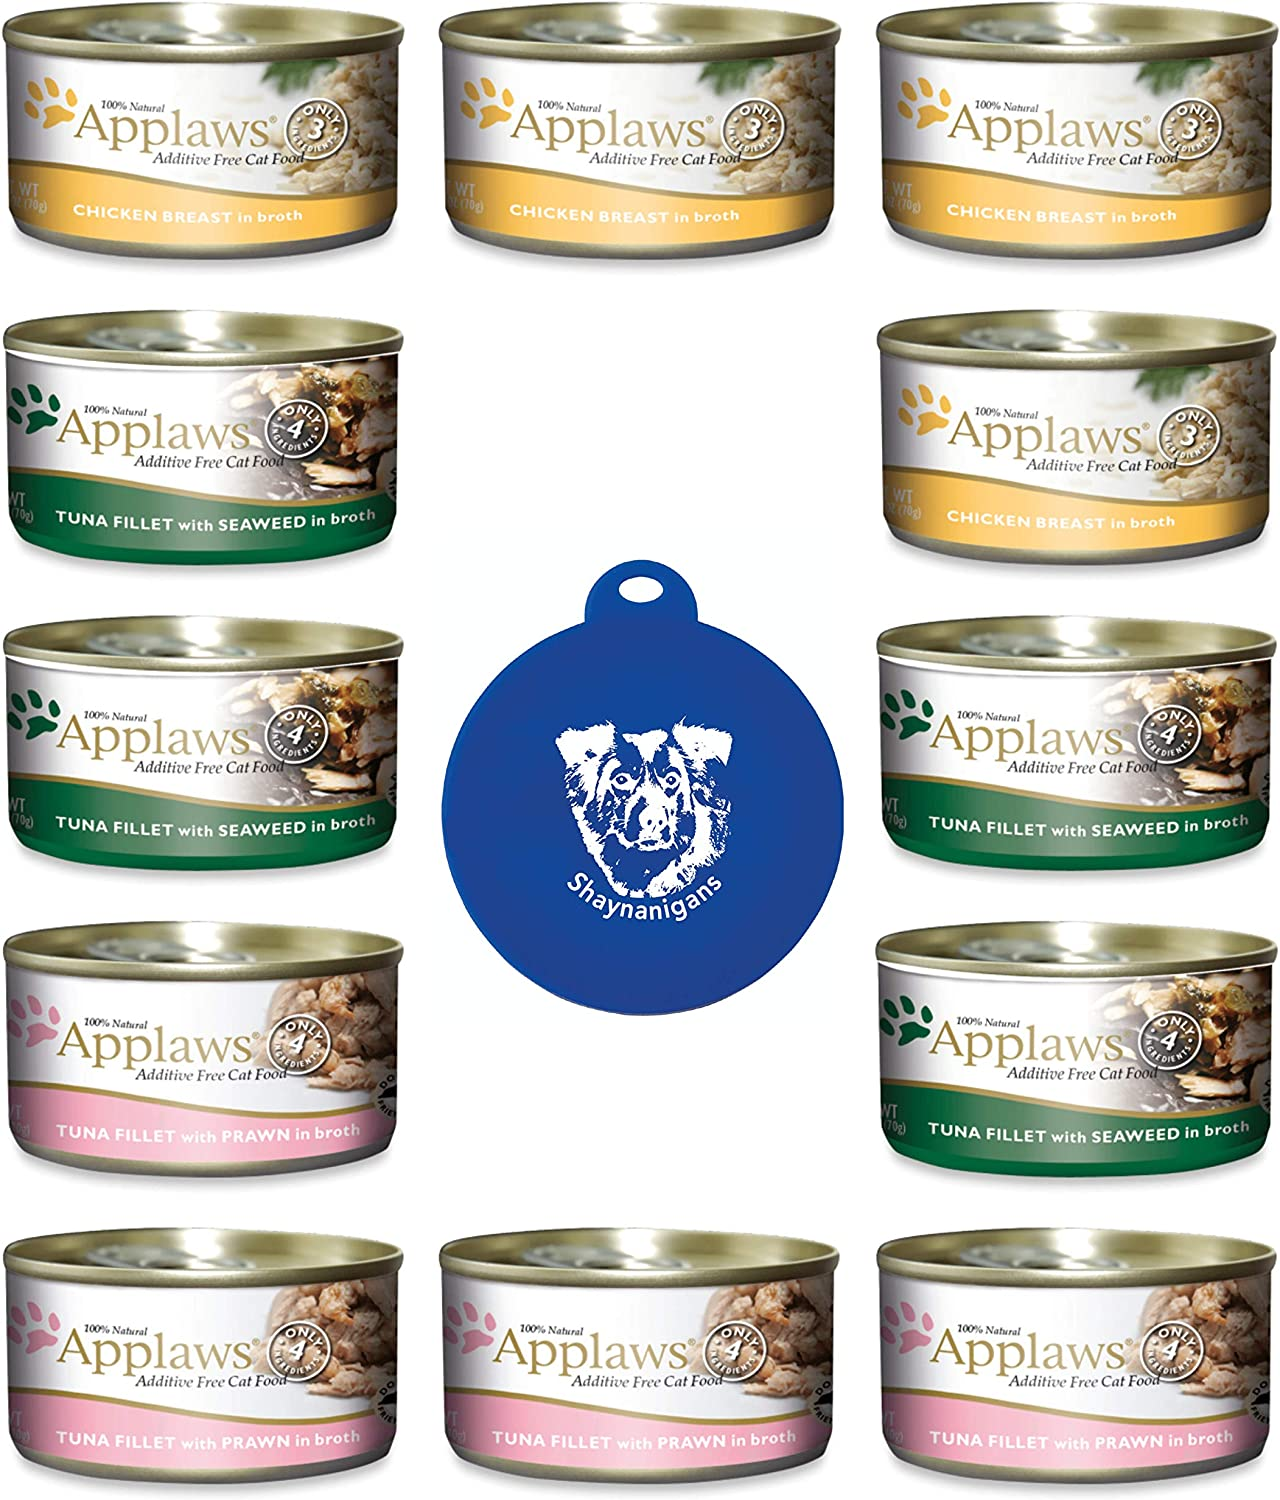 Applaws Additive Free Canned Cat Food in Broth in 3 Flavors: (4) Chicken Breast, (4) Tuna with Shrimp, & (4) Tuna with Seaweed (12 Cans Total, 2.47 Ounces Each) Plus Silicone Can Lid -- 13 Items Total